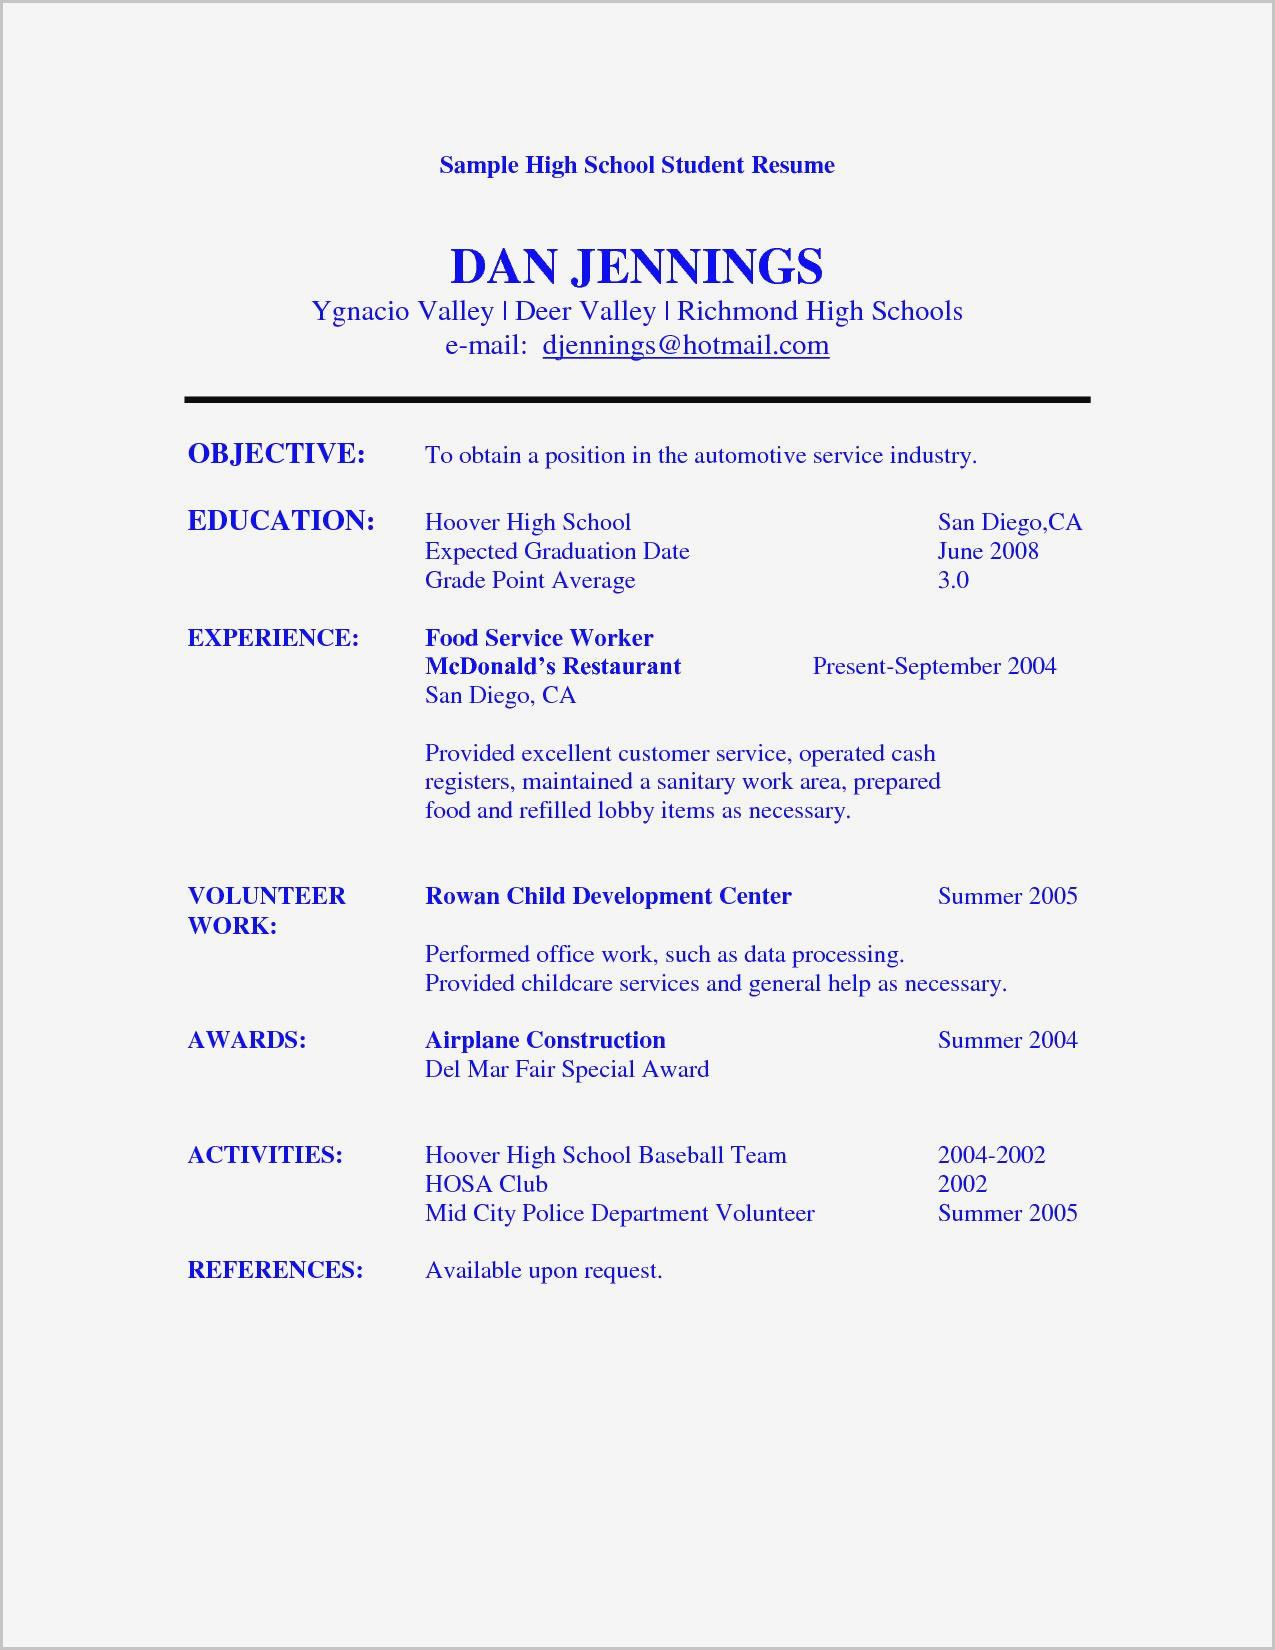 High School Student Resume Template Microsoft Word